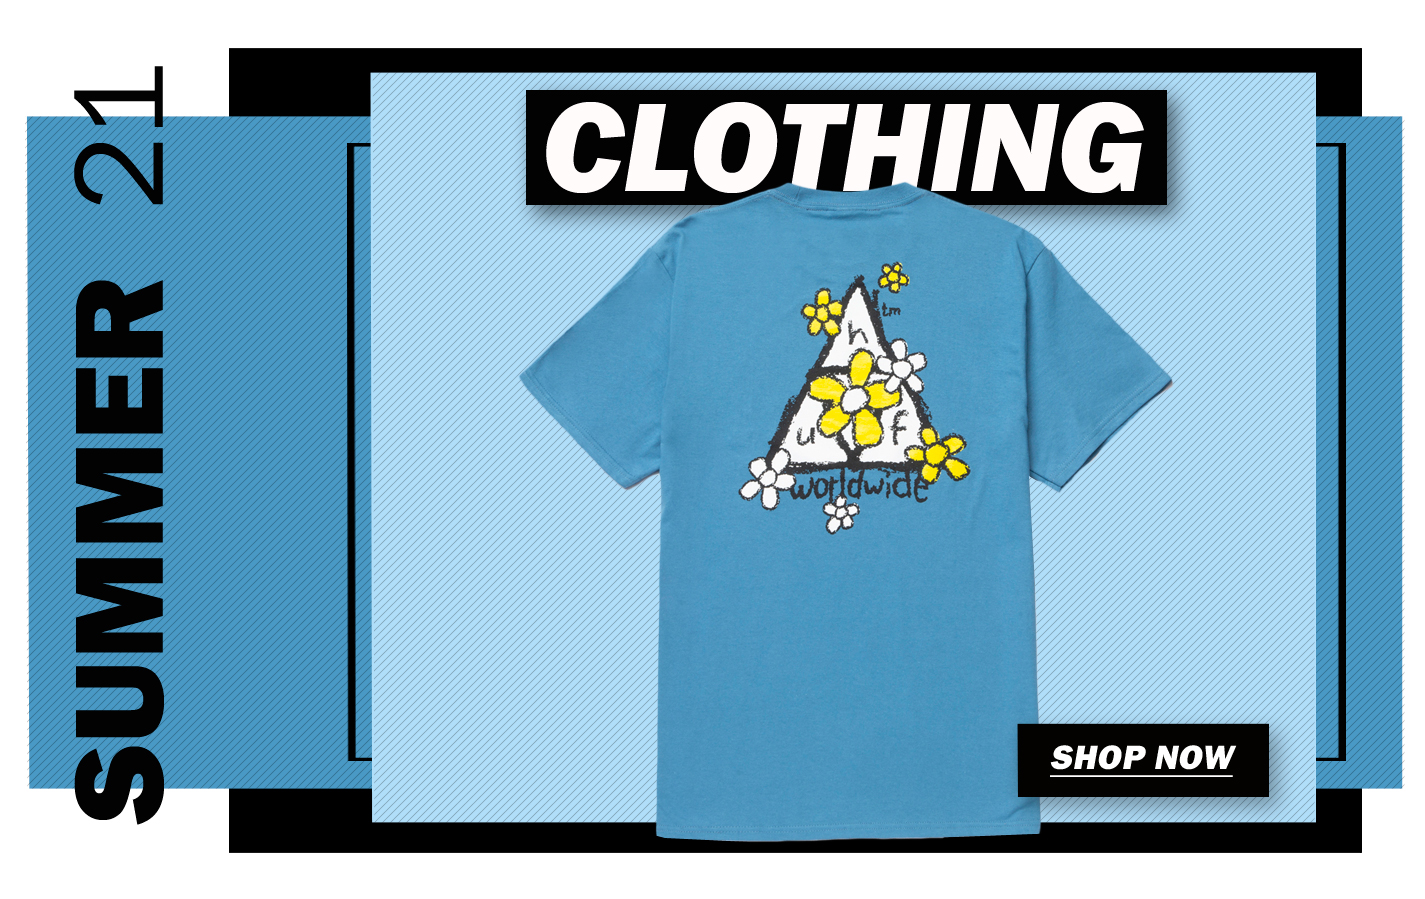 All your favourite Skate clothing and Street wear all at the best prices from Black Sheep Skateboard Shop